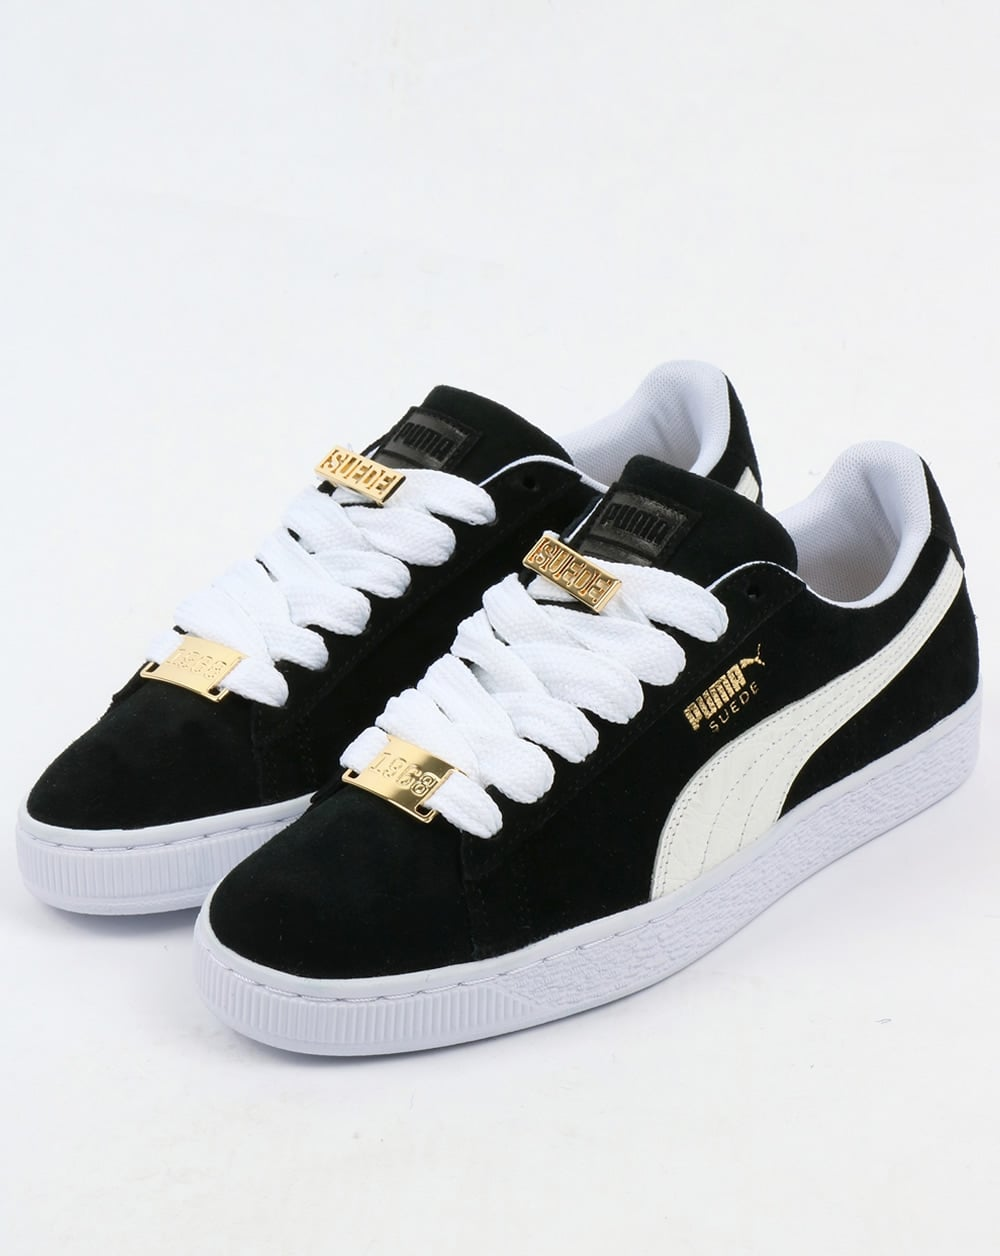 buy popular 49c5e 79afc Puma Suede Classic Bboy Fabulous Trainers Black/white